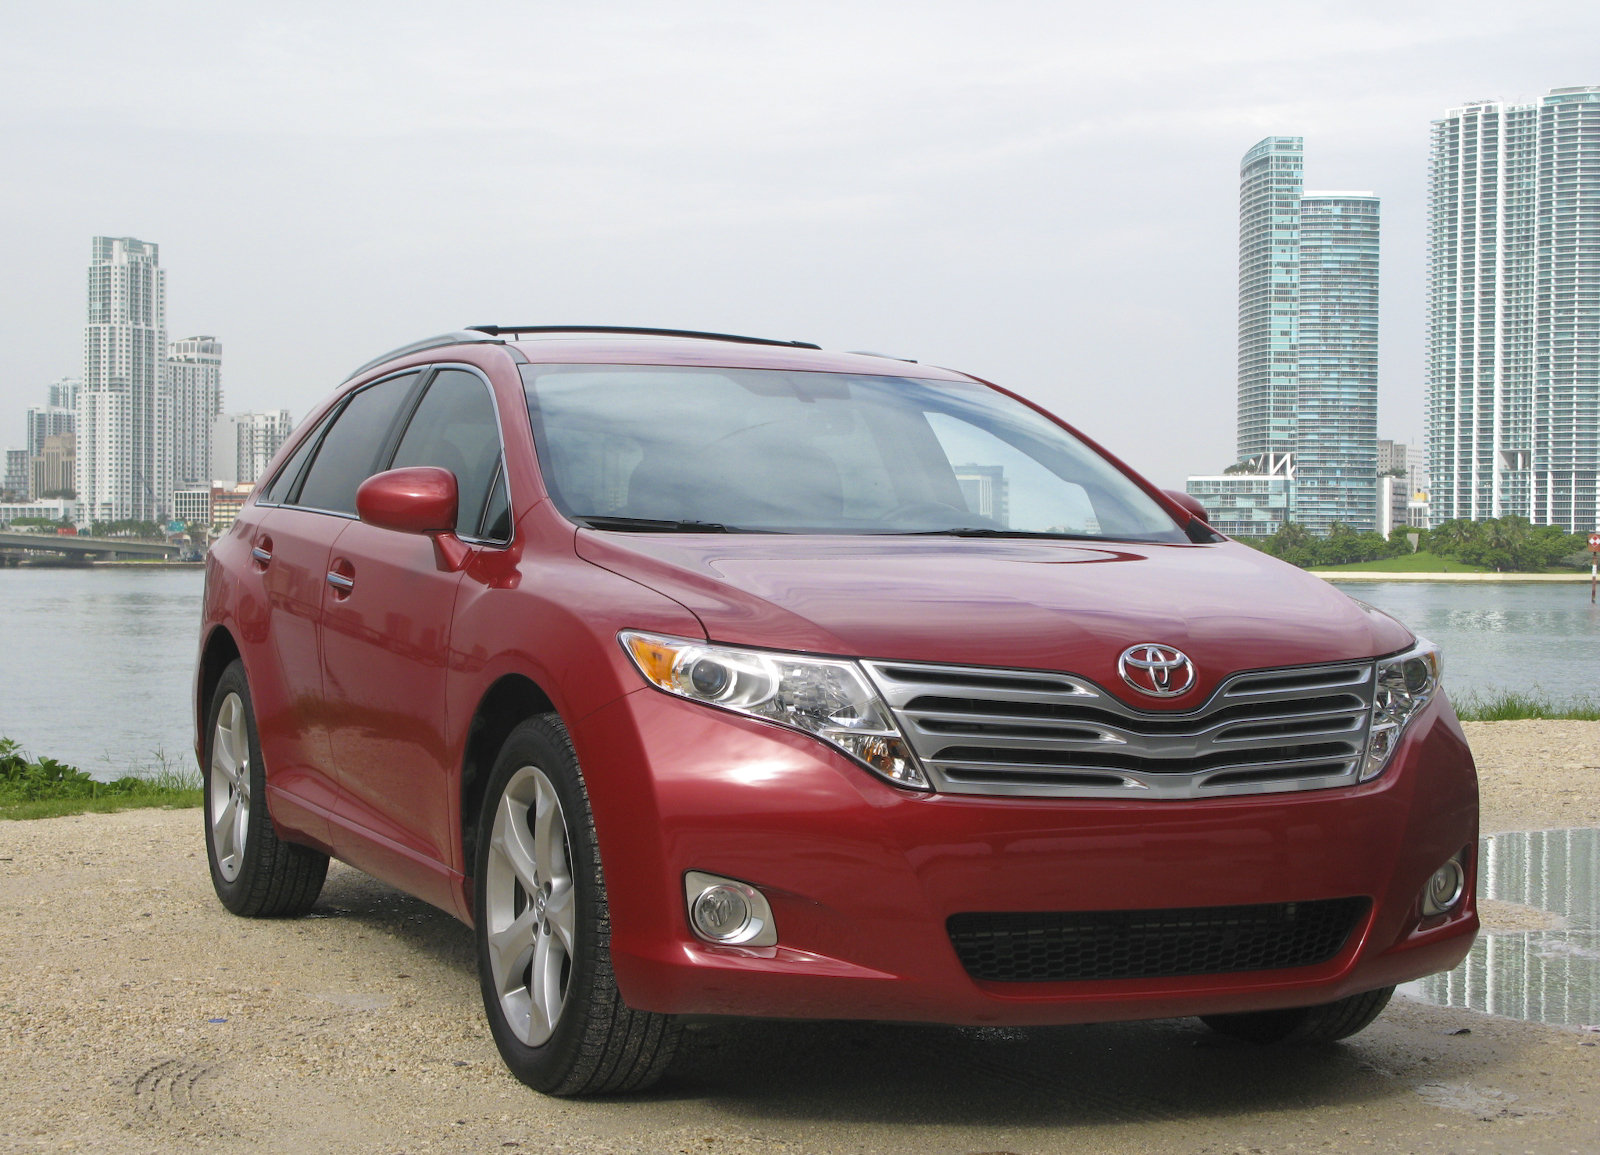 2009 toyota venza picture 309775 car review top speed. Black Bedroom Furniture Sets. Home Design Ideas